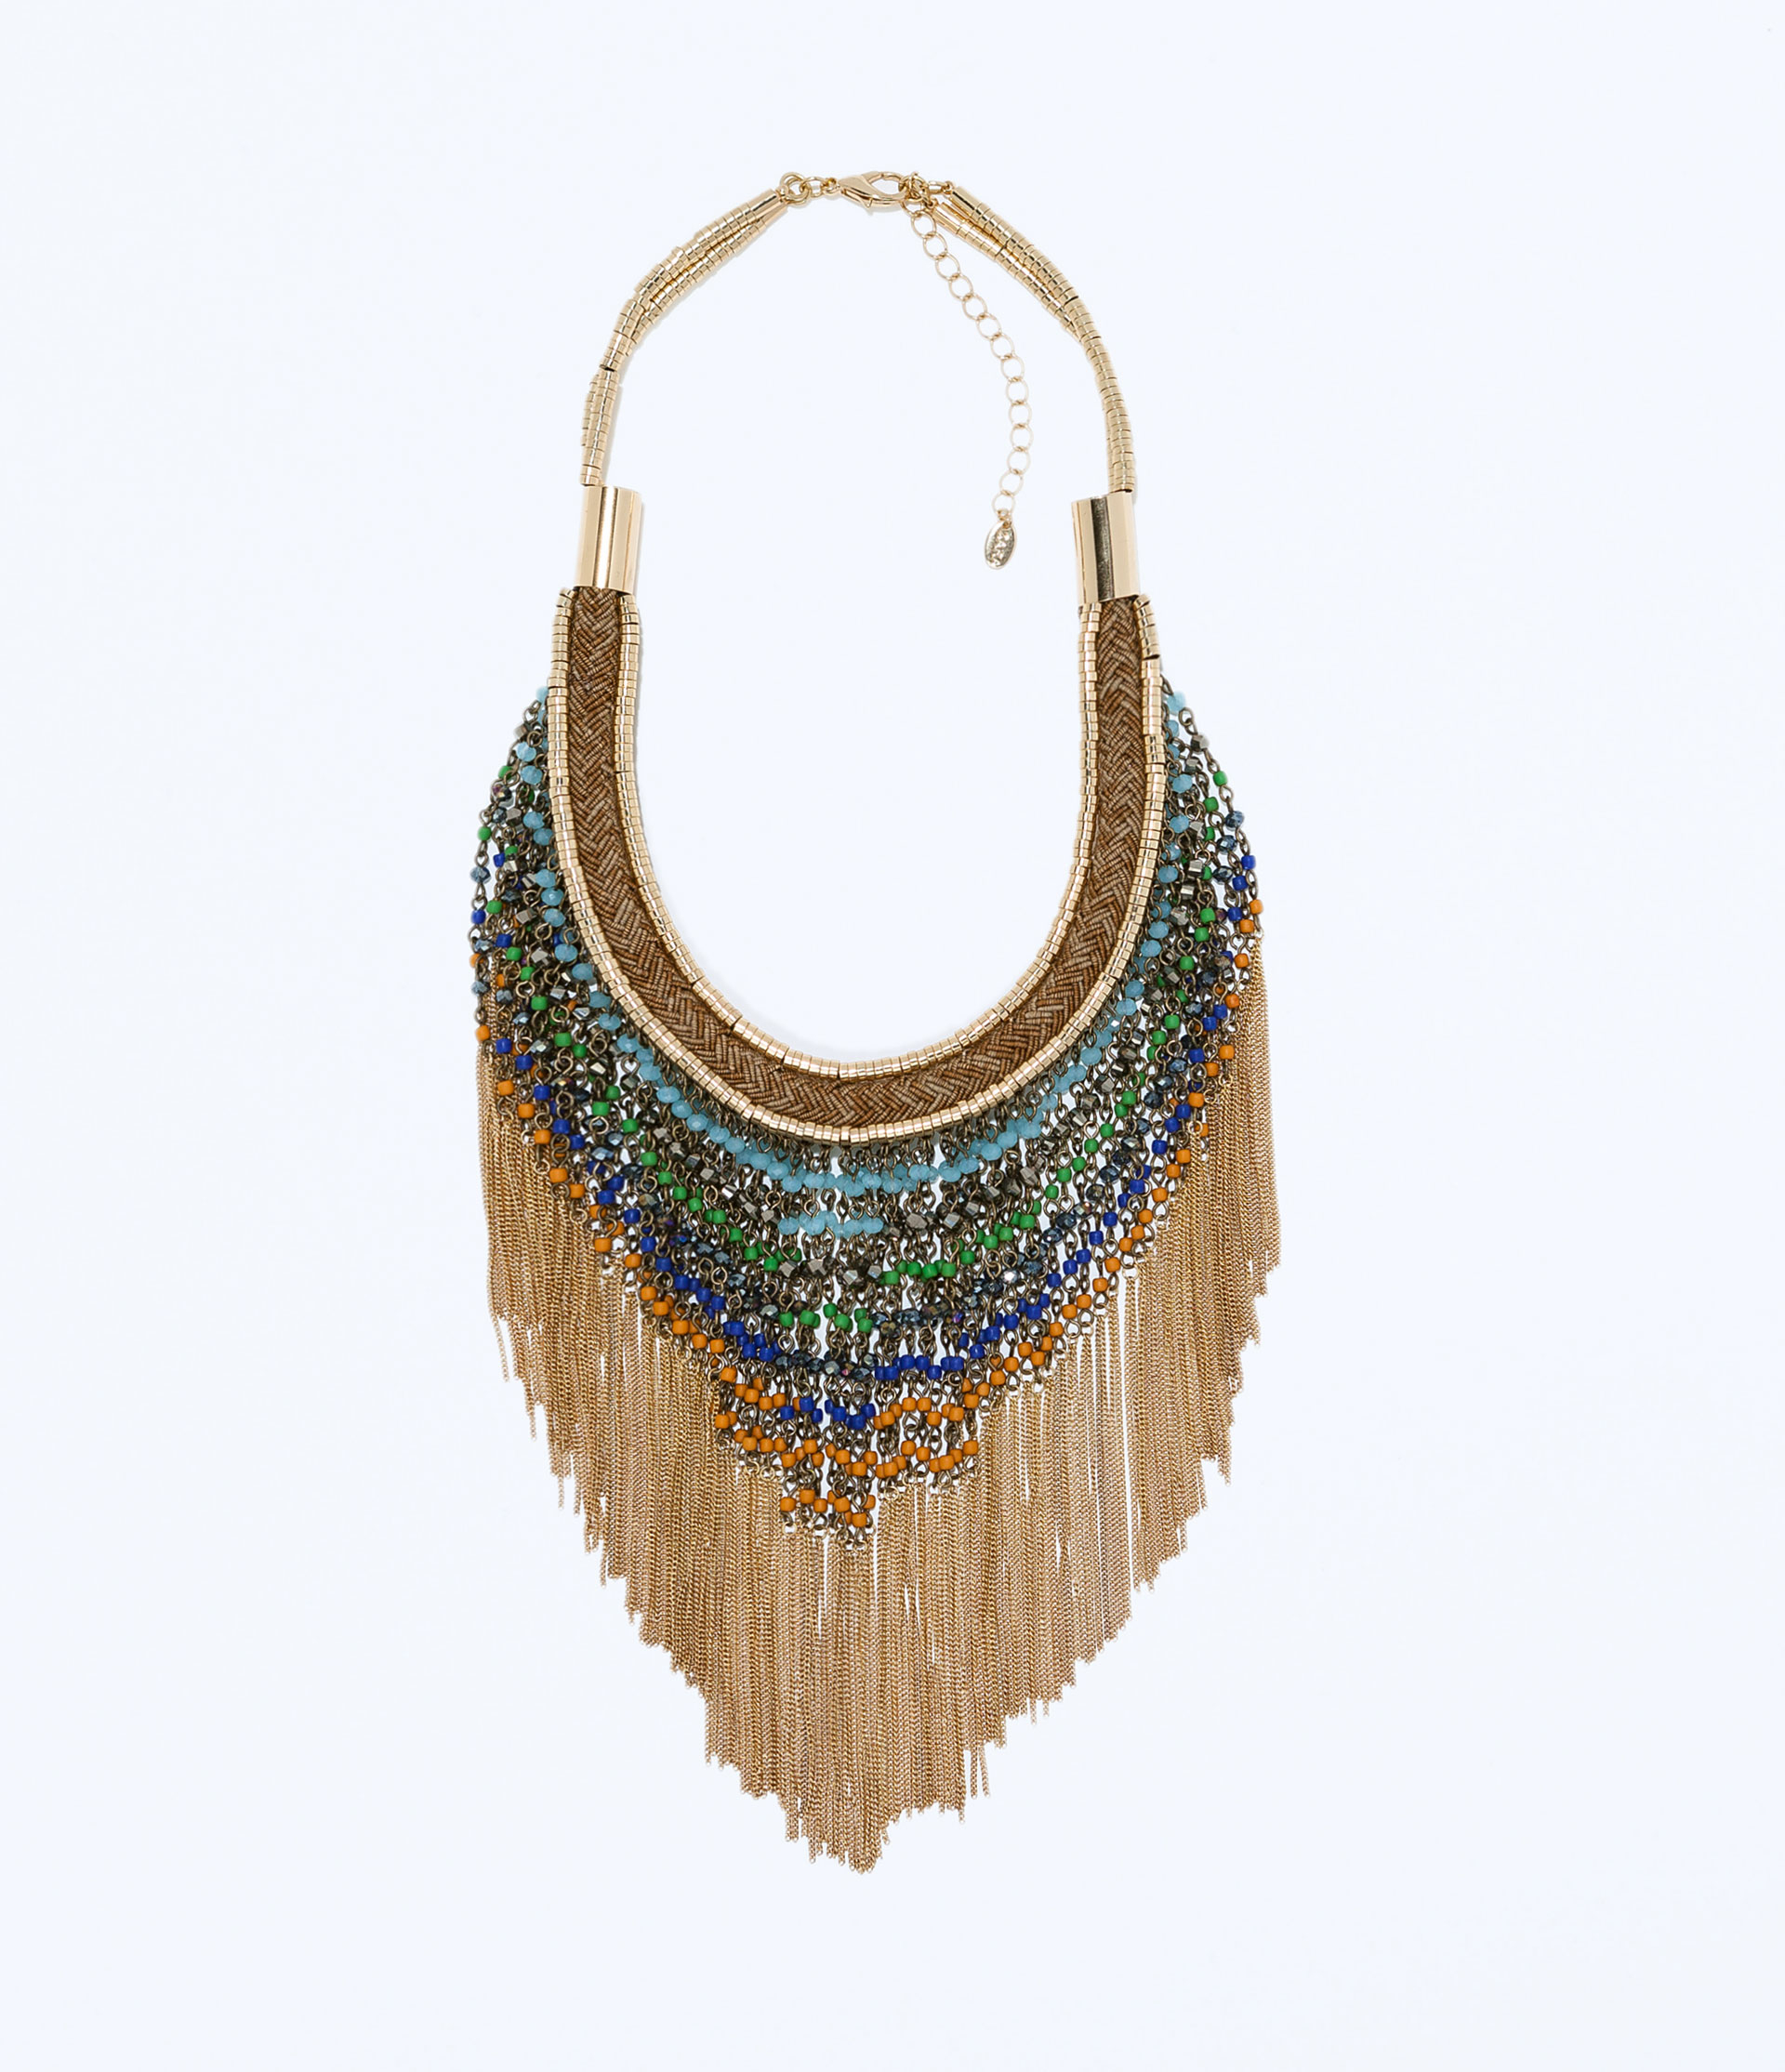 5 House Harlow Necklace